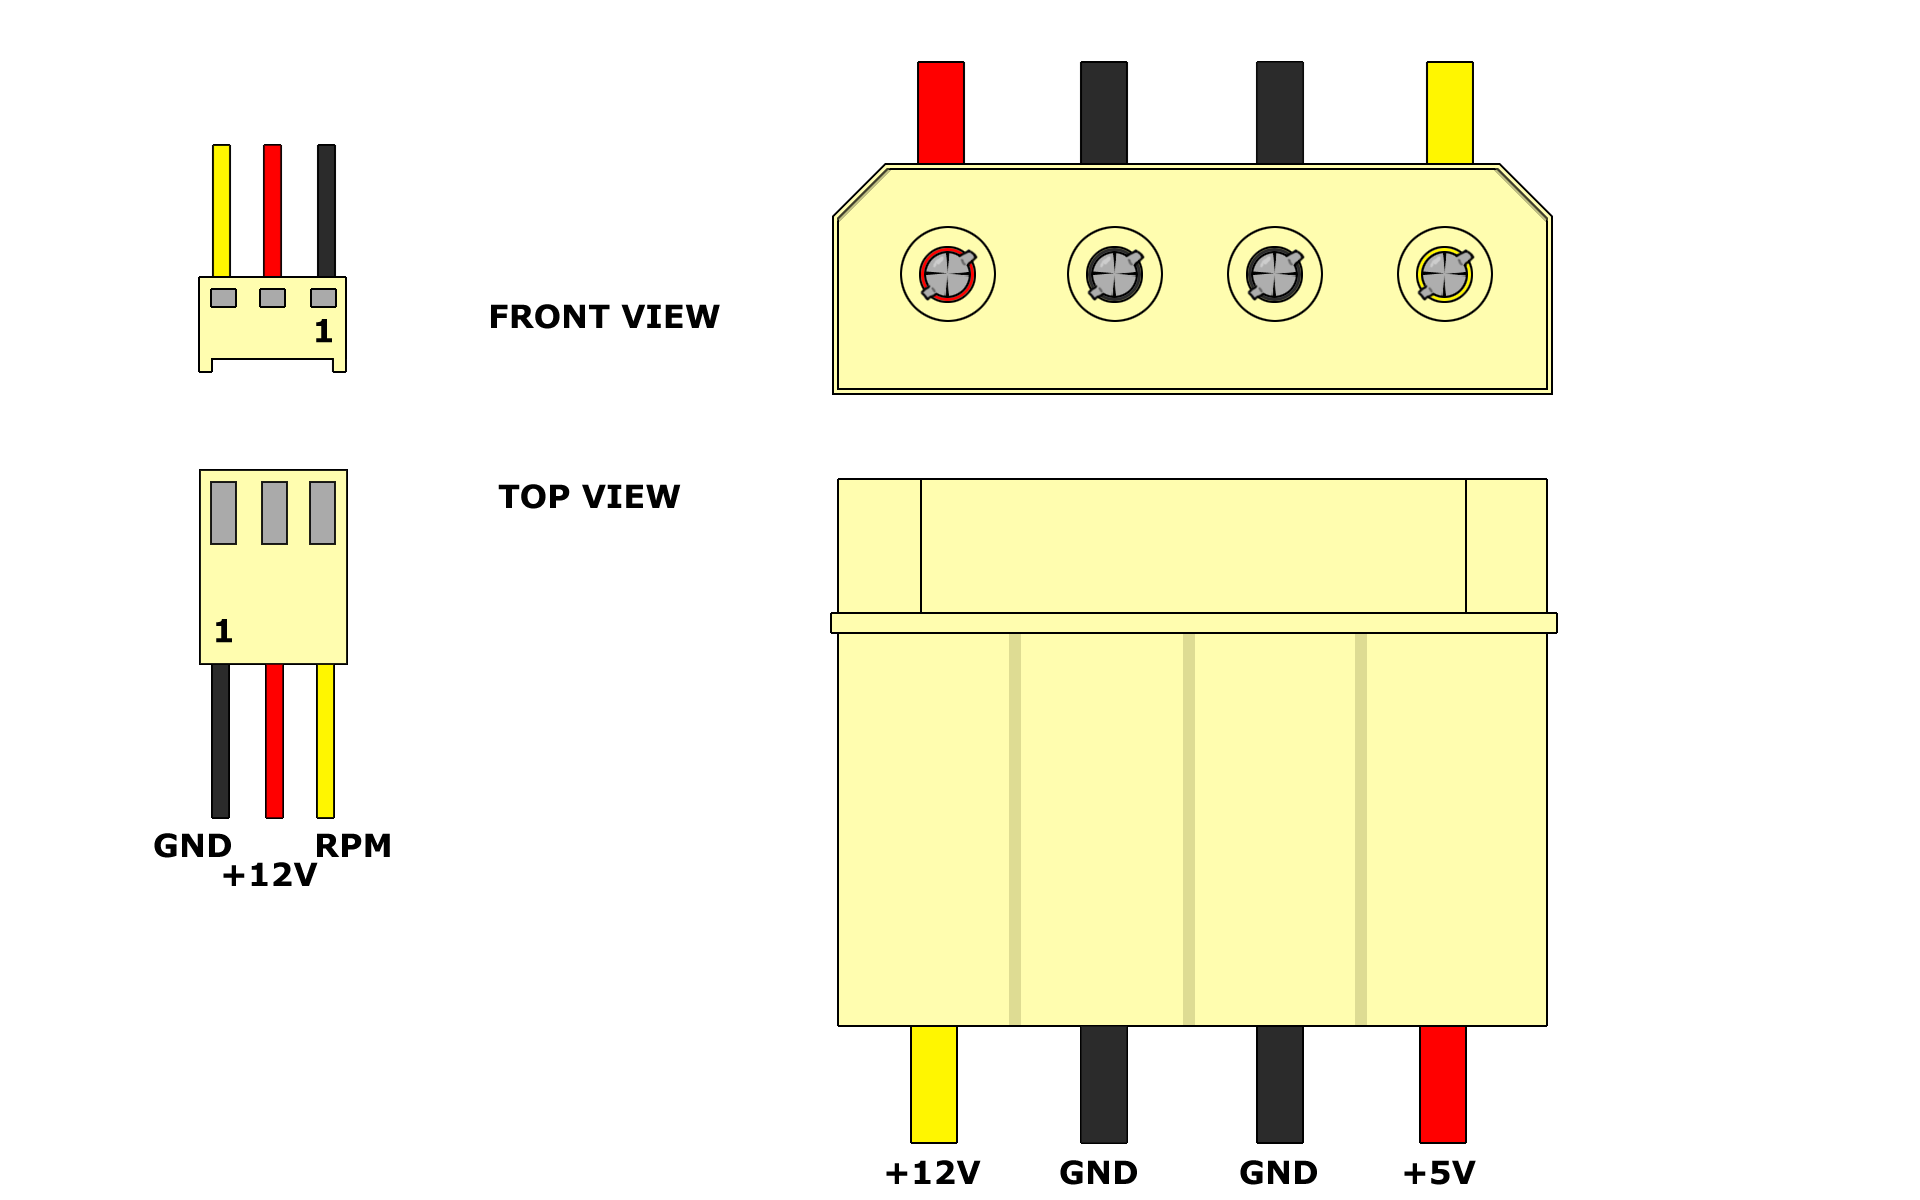 3 pin molex wiring diagram balanced xlr to unbalanced 1 4 which wire is negative on this pc fan electrical